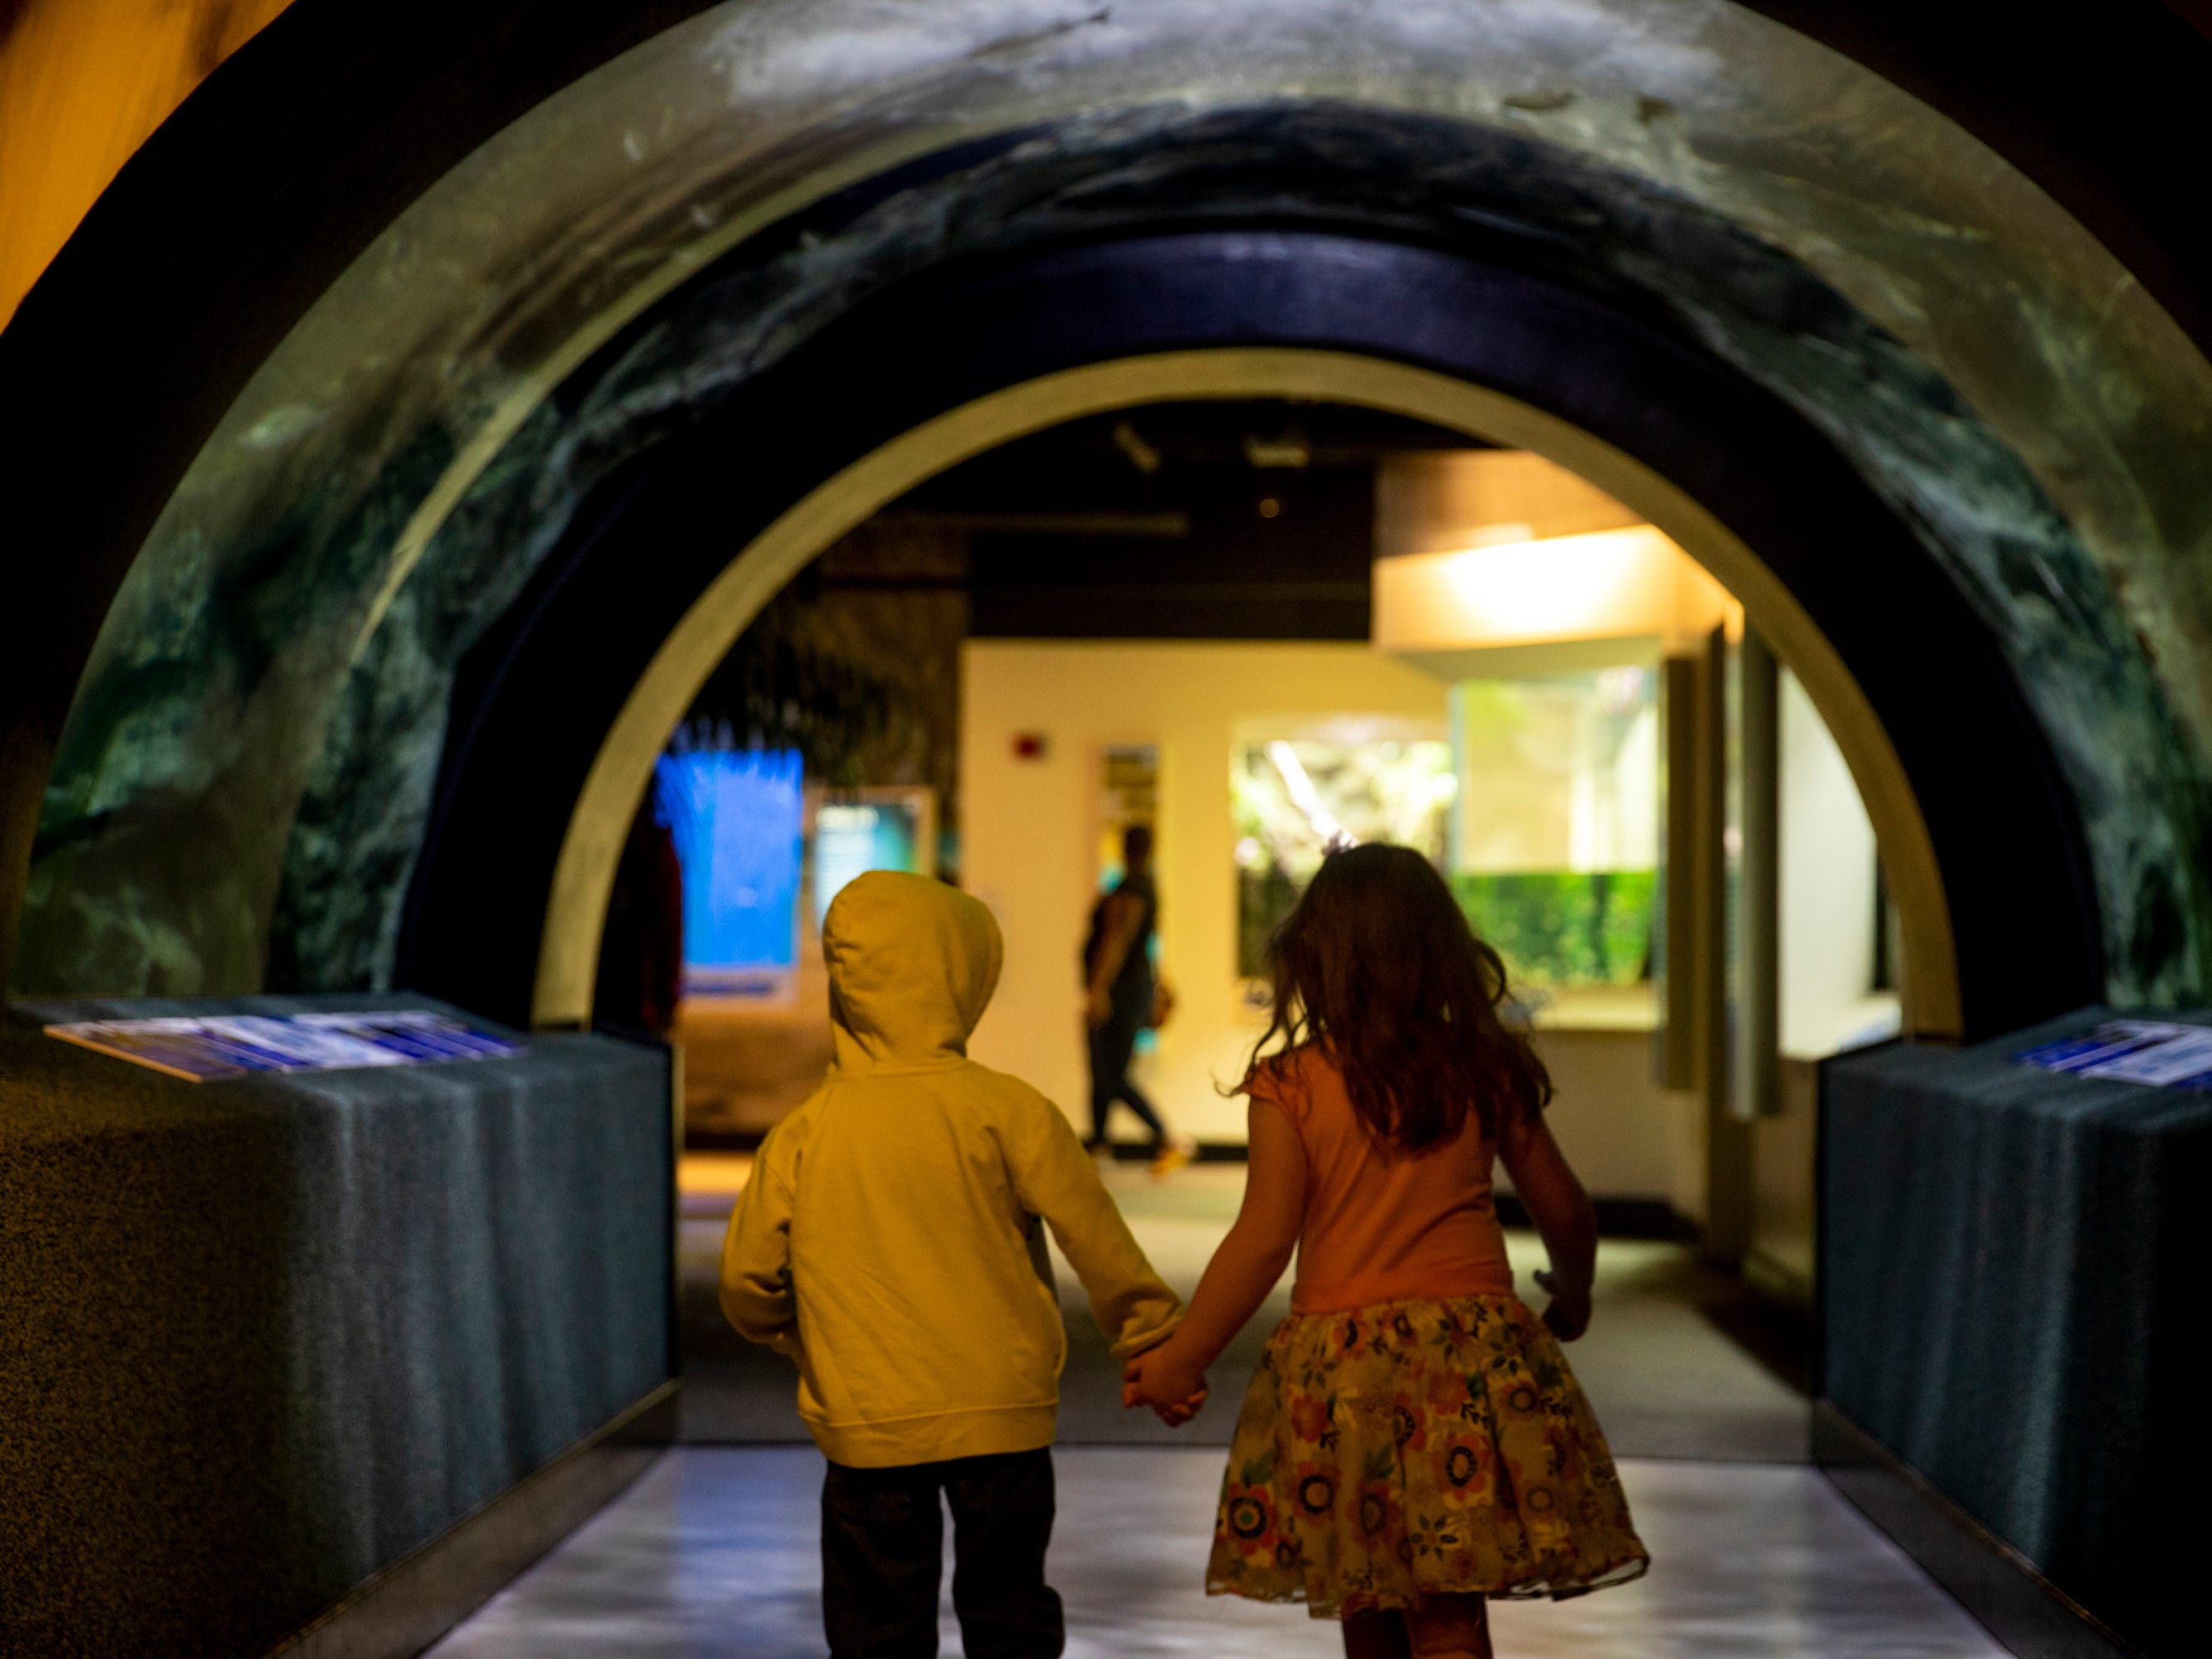 Cousins Lucas Carpenter, 4, of Loveland, and Caroline Abt, 4, of West Chester, walk through Freshwater Falls Exhibit tunnel at Newport Aquarium Thursday, April 11, 2019 in Newport, Ky.